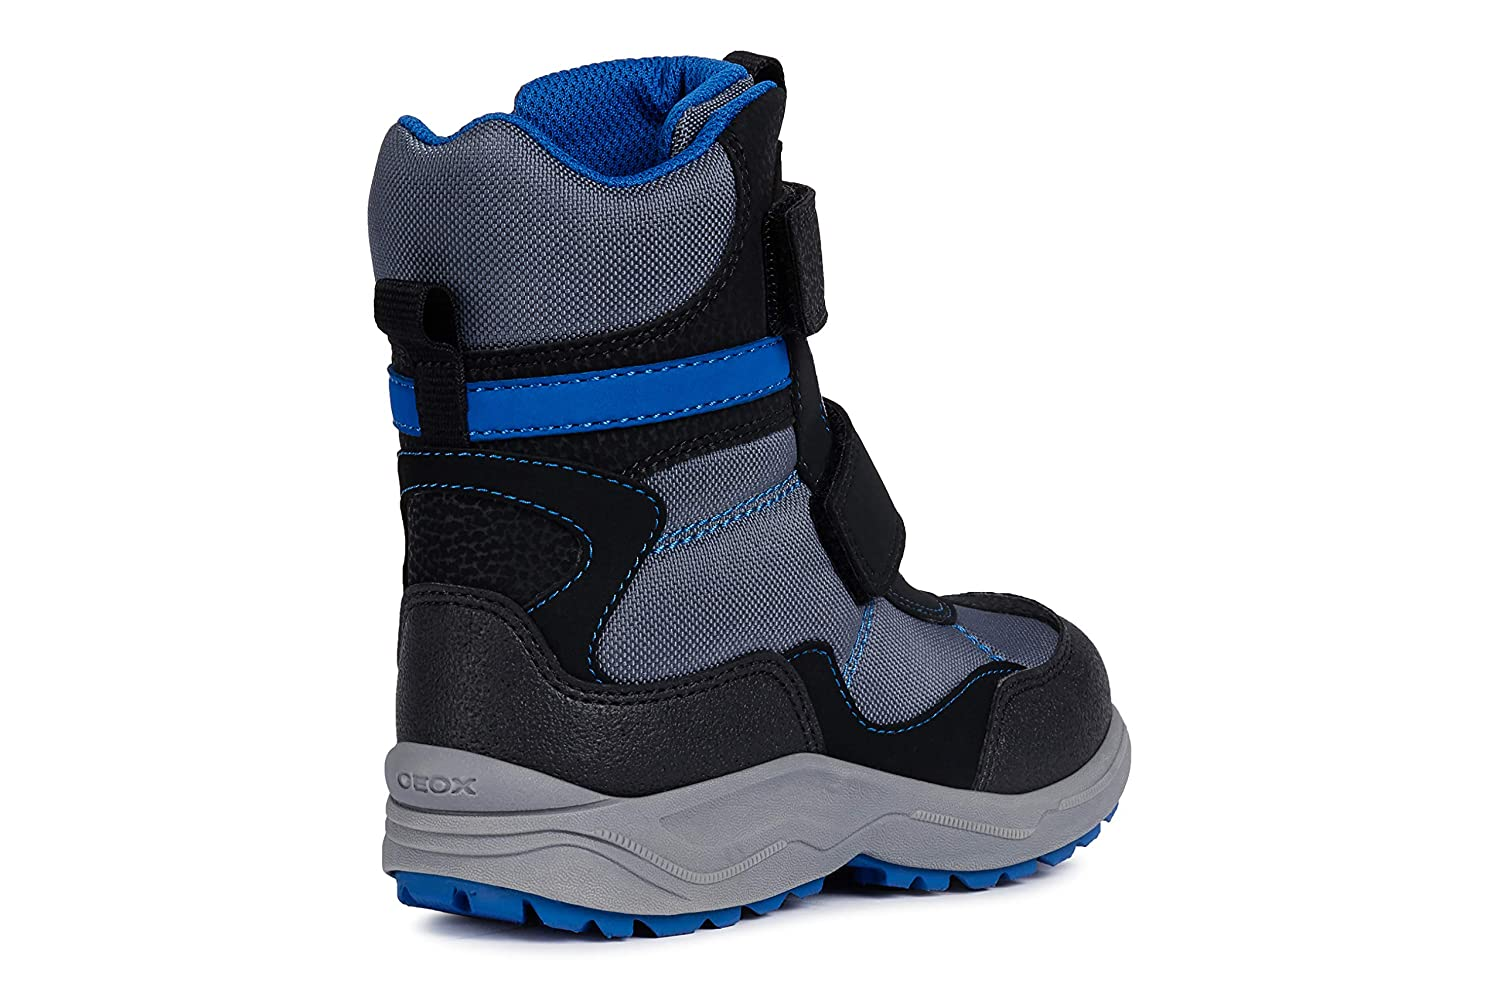 Details about Boys Geox Boots Waterproof Size 30 USA 12